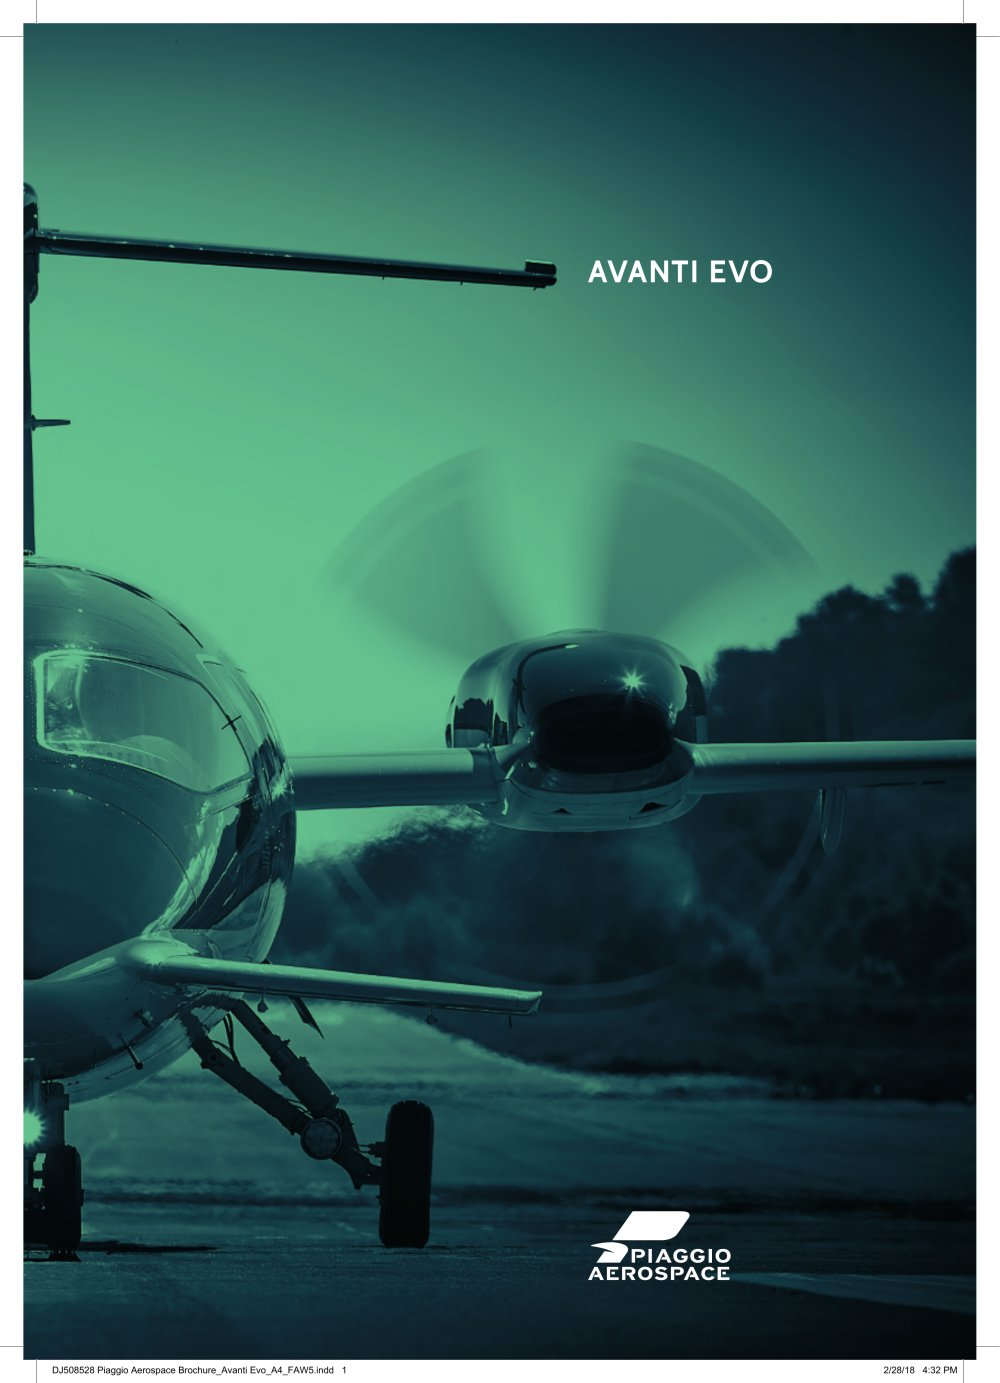 avanti evo - piaggio aerospace - pdf catalogue | technical